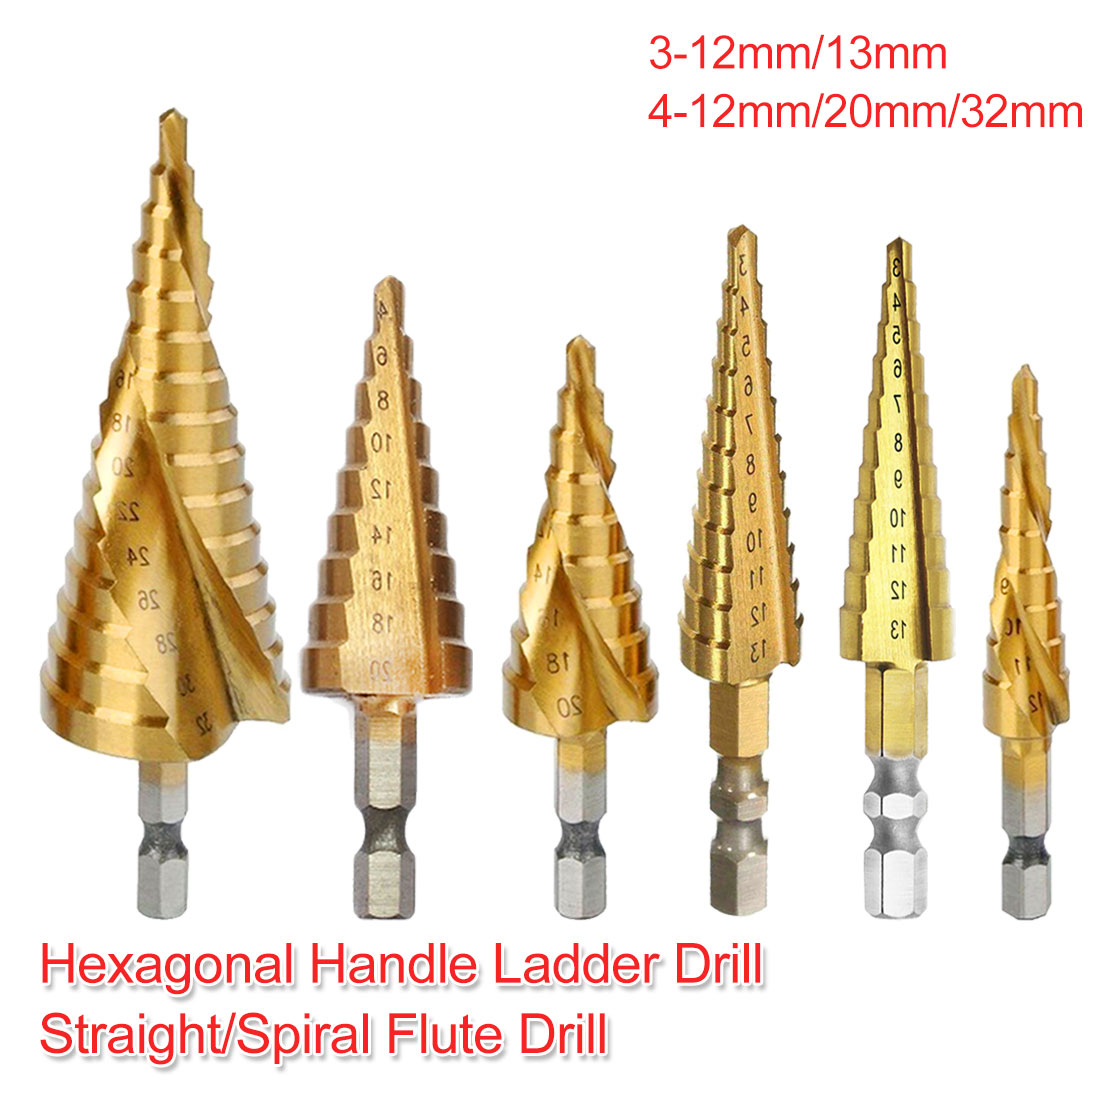 Step Drill 4-12mm/20mm/32mm 3-12mm/13mm HSS Titanium Coated Pagoda ShapeHex Shank Straight/Spiral Flute Drill For Wood/Metal